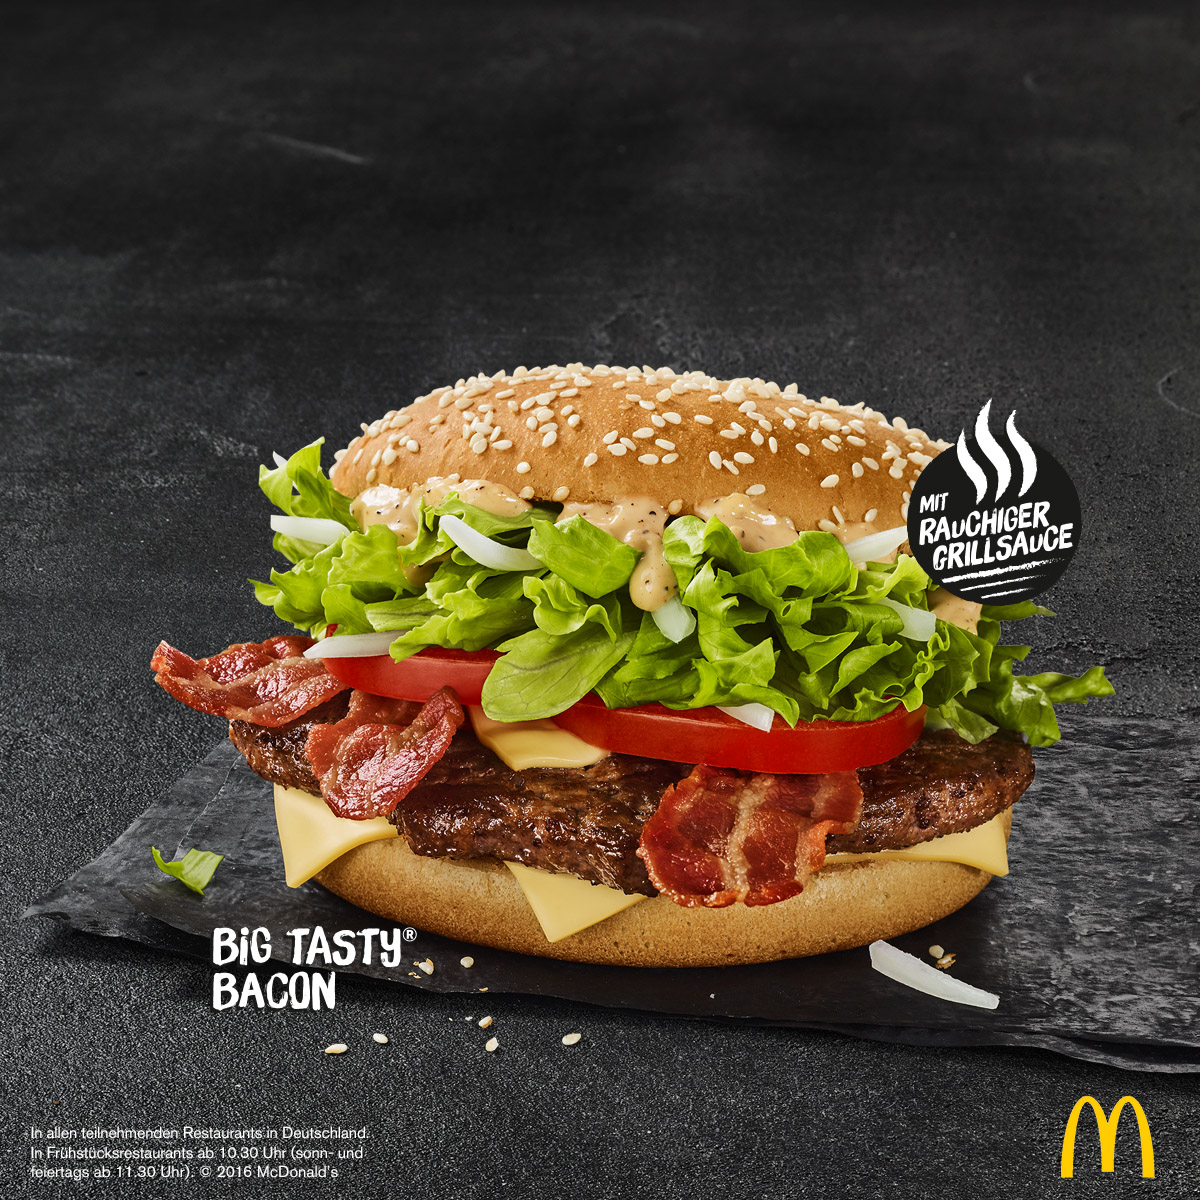 McDonalds: Big Tasty Bacon immer im Sortiment